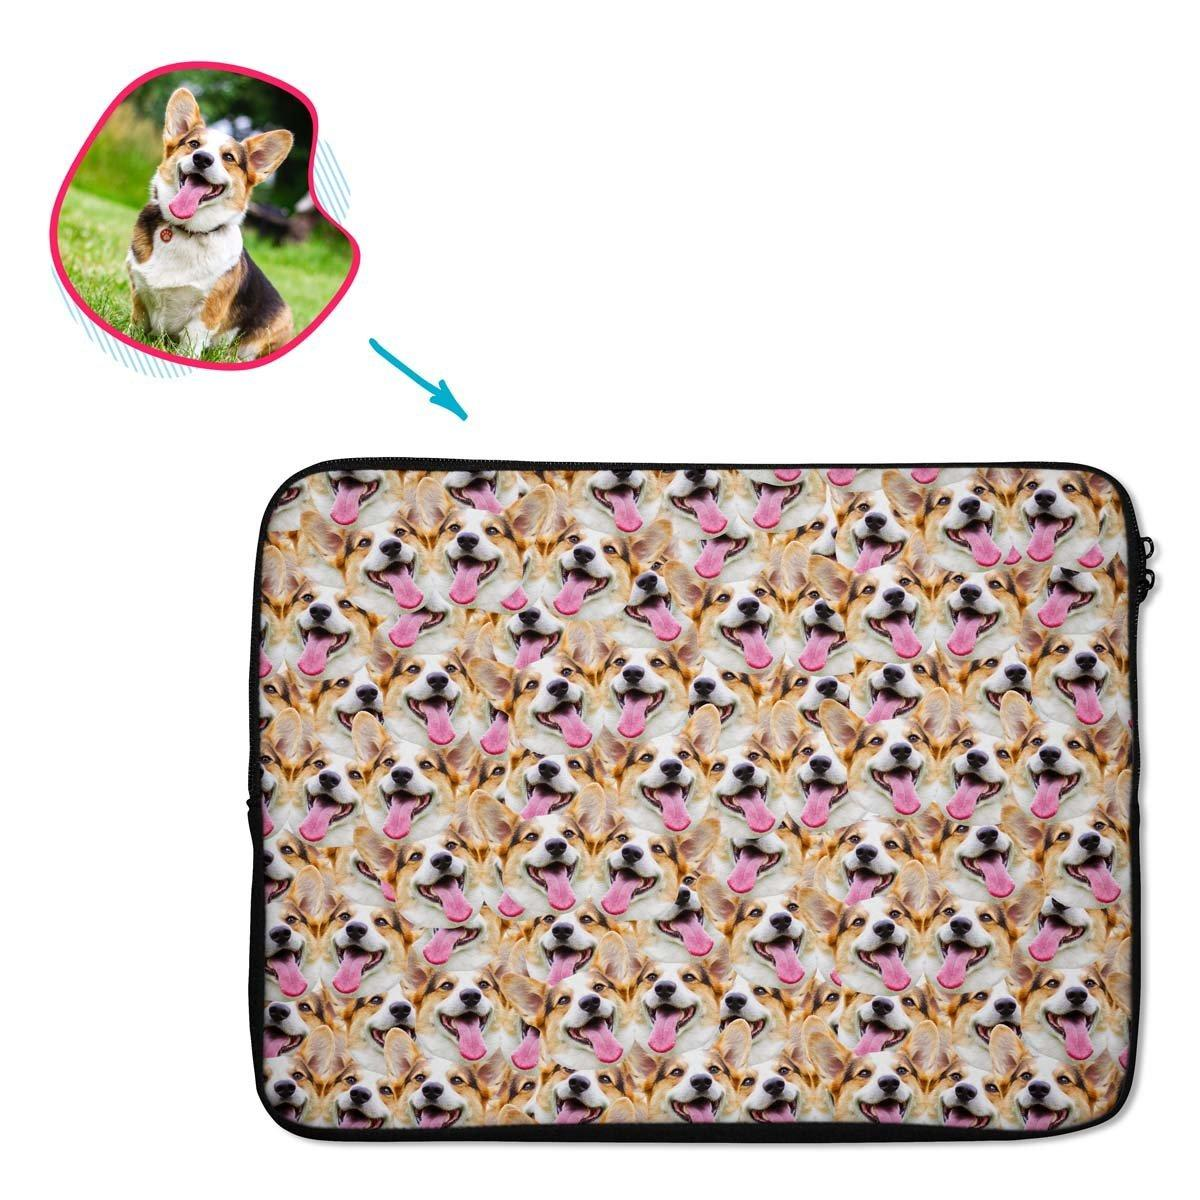 Dog Mash laptop sleeve personalized with photo of face printed on them